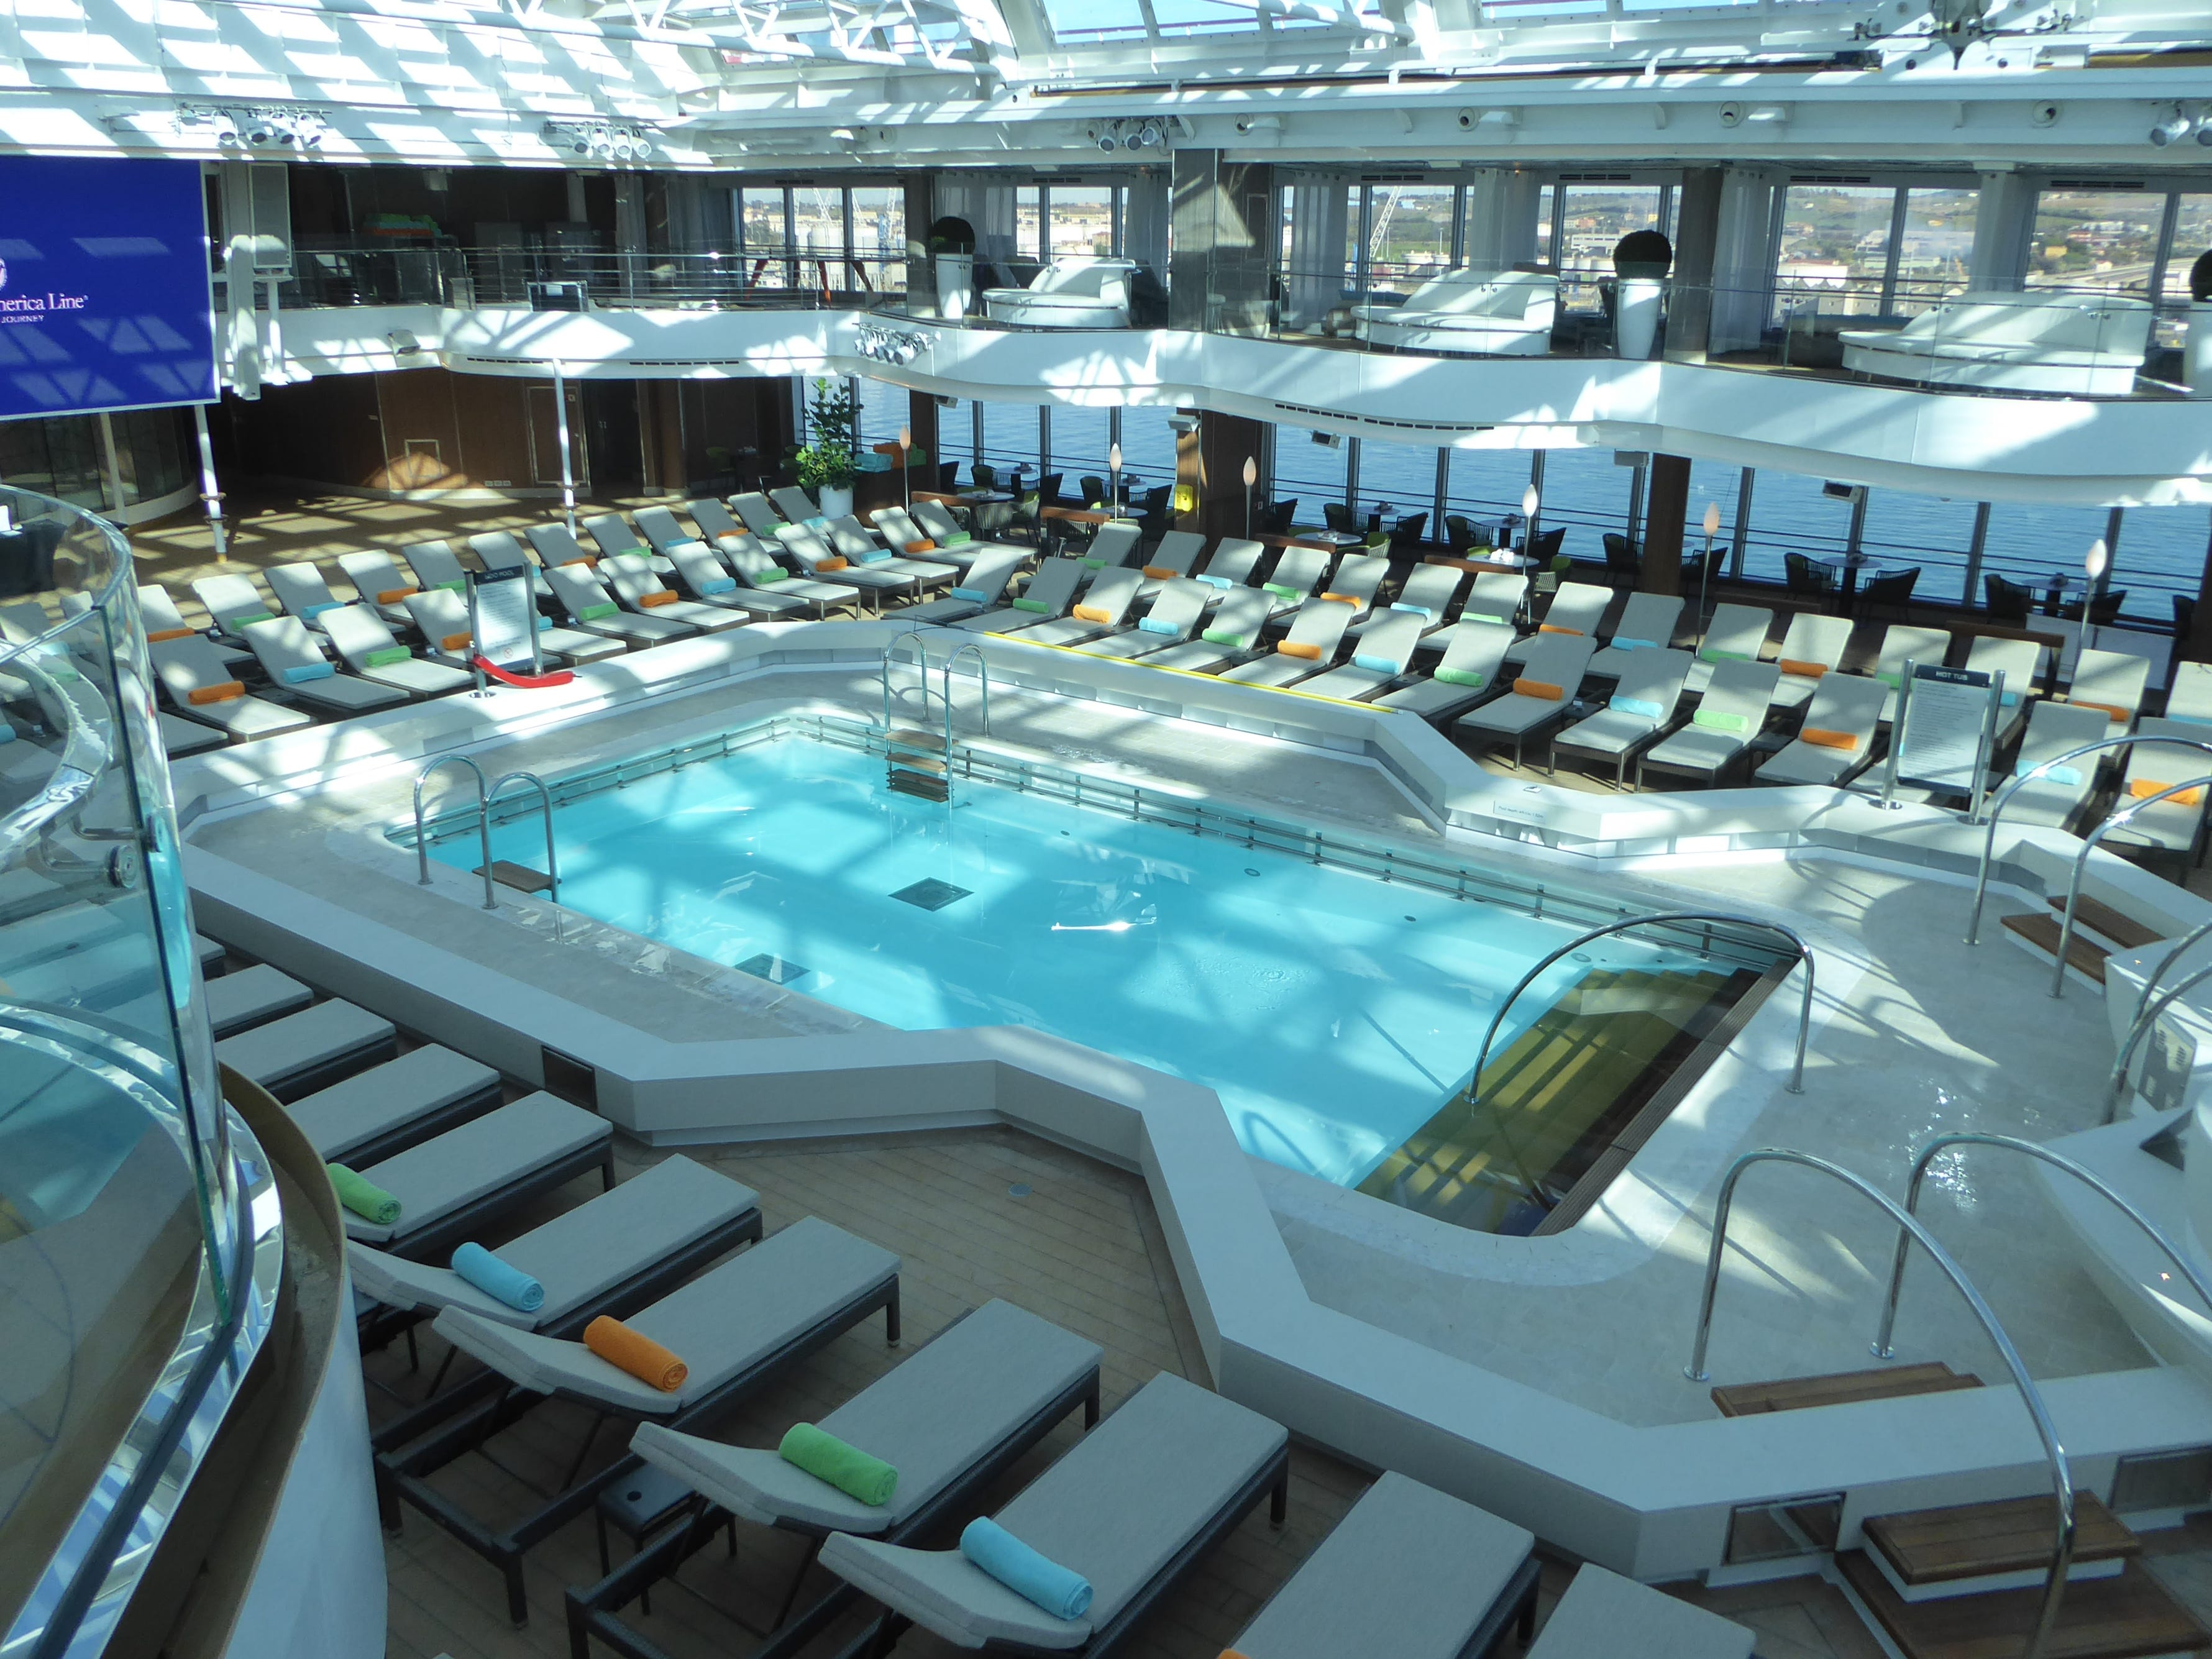 On Deck 10, a terrace lined with cabanas overlooks the midships Lido Pool.